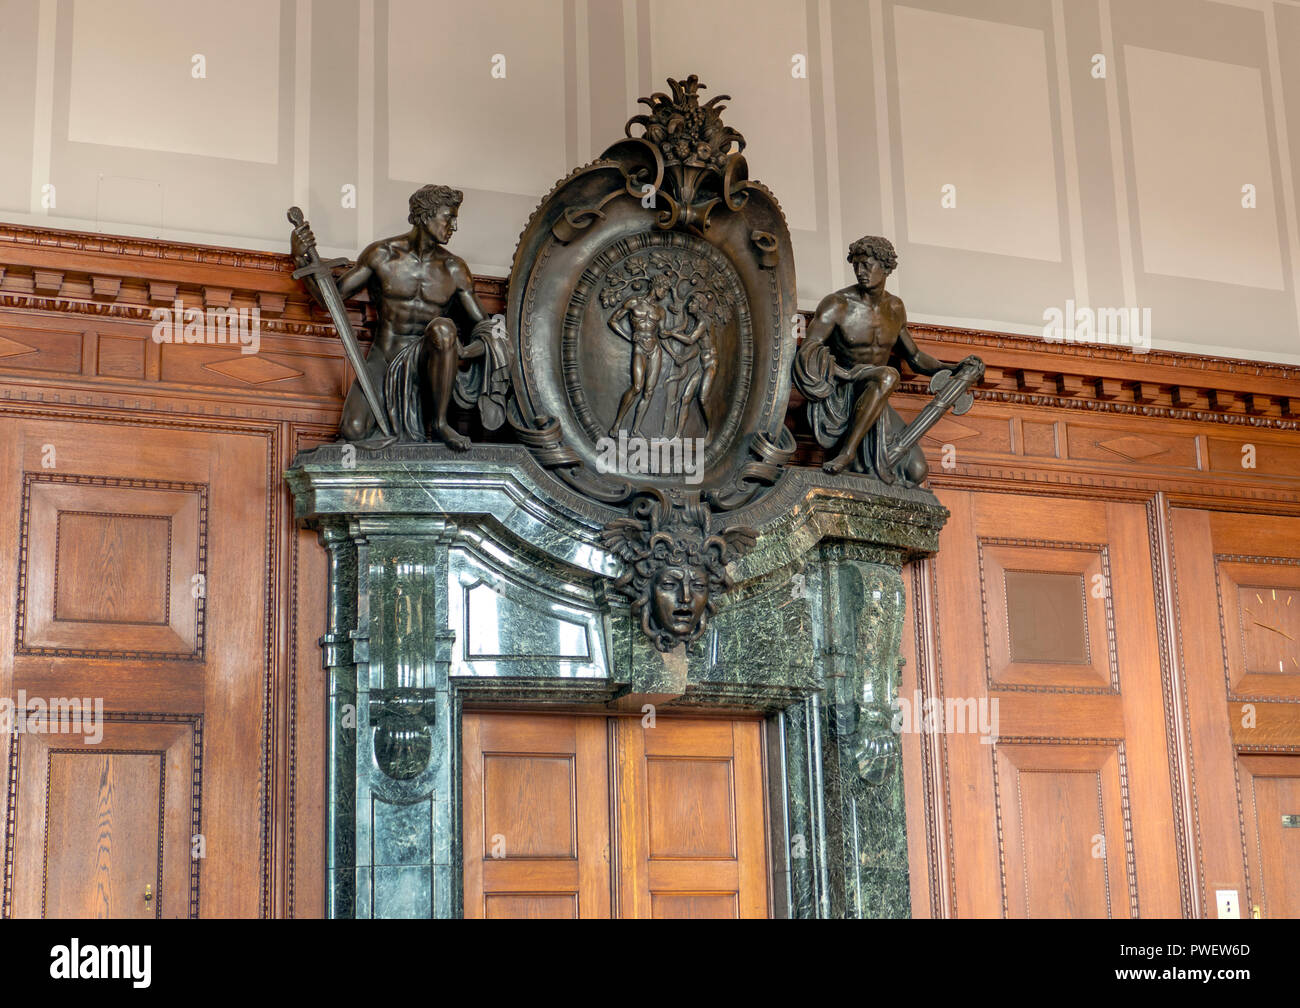 Entrance to courtroom 600 at the Palace of Justice in Nuremberg, Germany. Location of the Nuremberg trials of Nazi war criminals 1945. - Stock Image